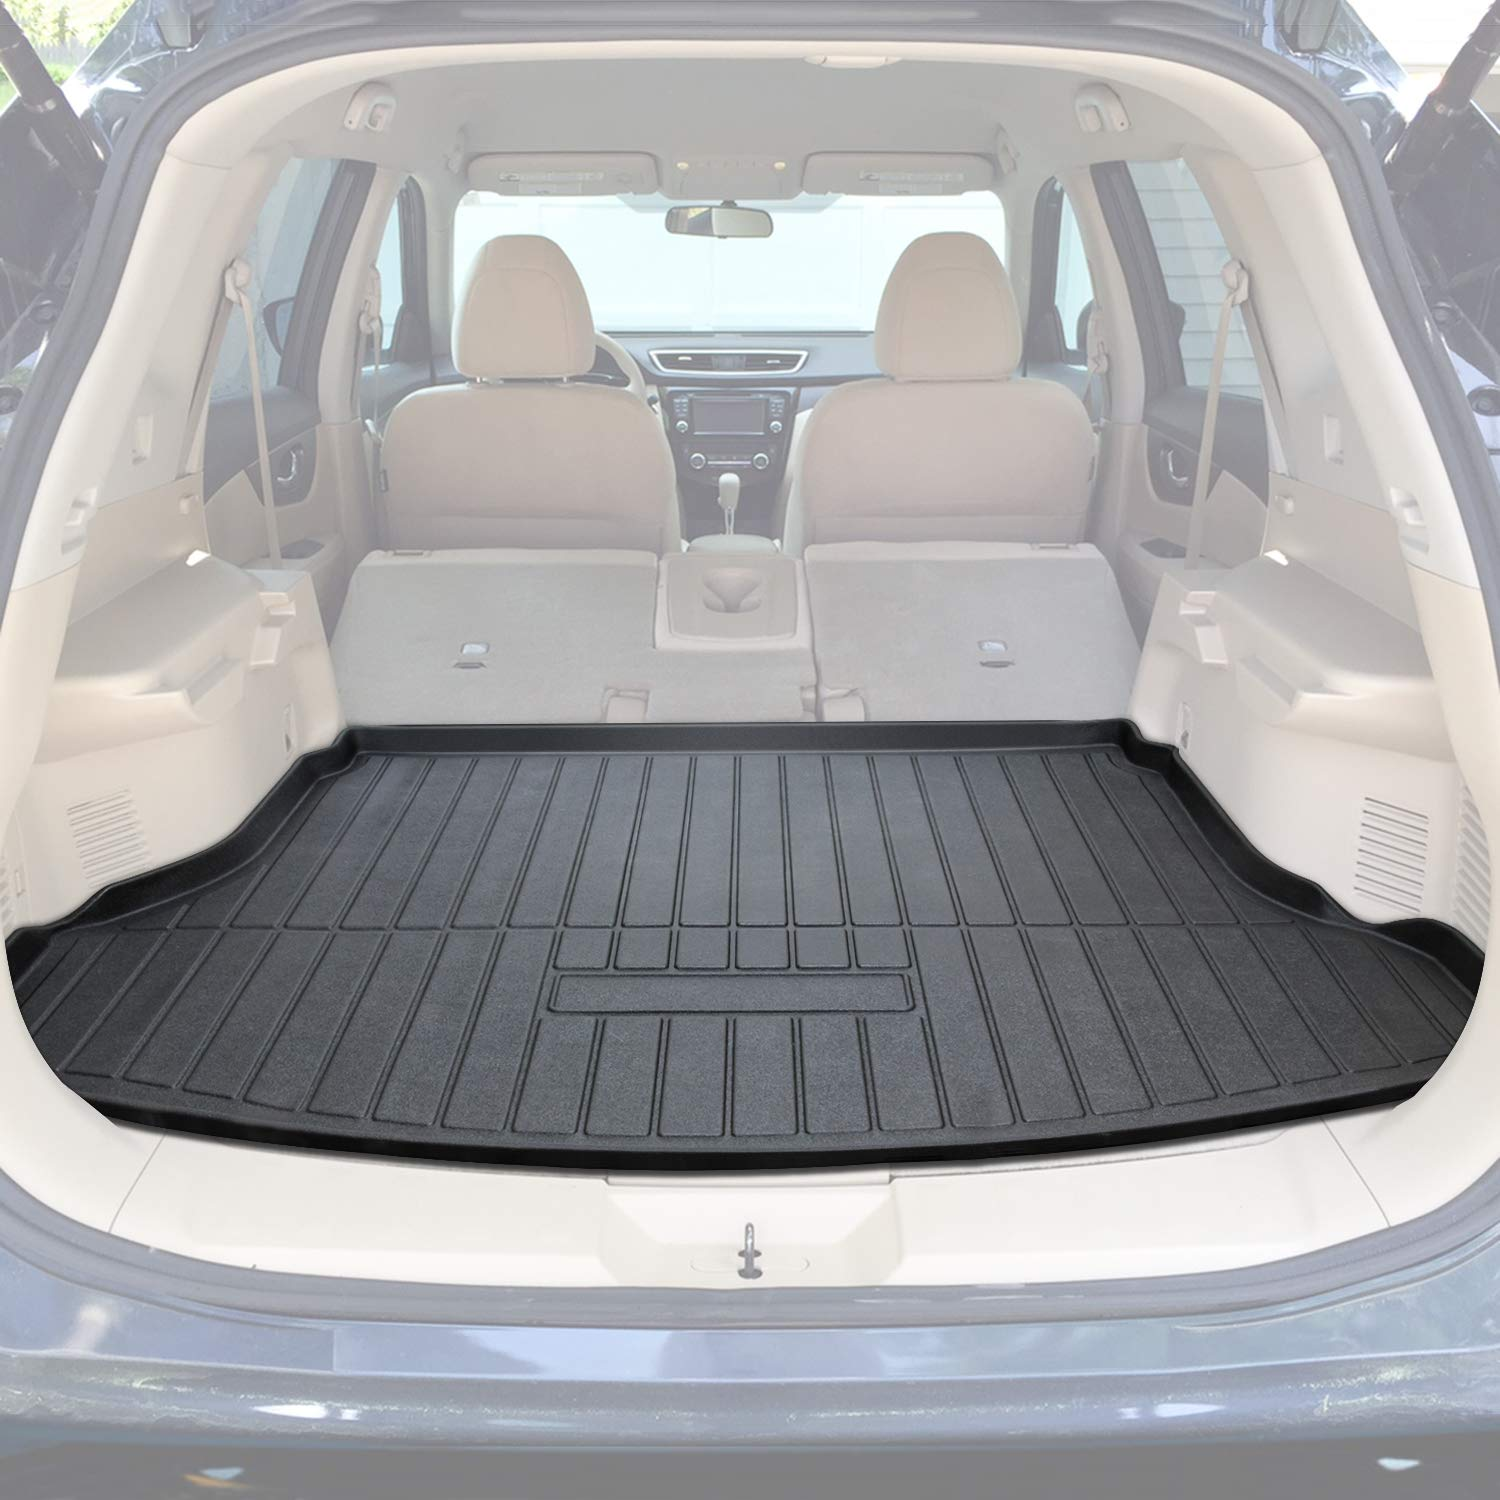 E-cowlboy Cargo Liner Rear Cargo Tray Trunk Floor Mat Protector for Nissan X-trail Rogue SV S SL